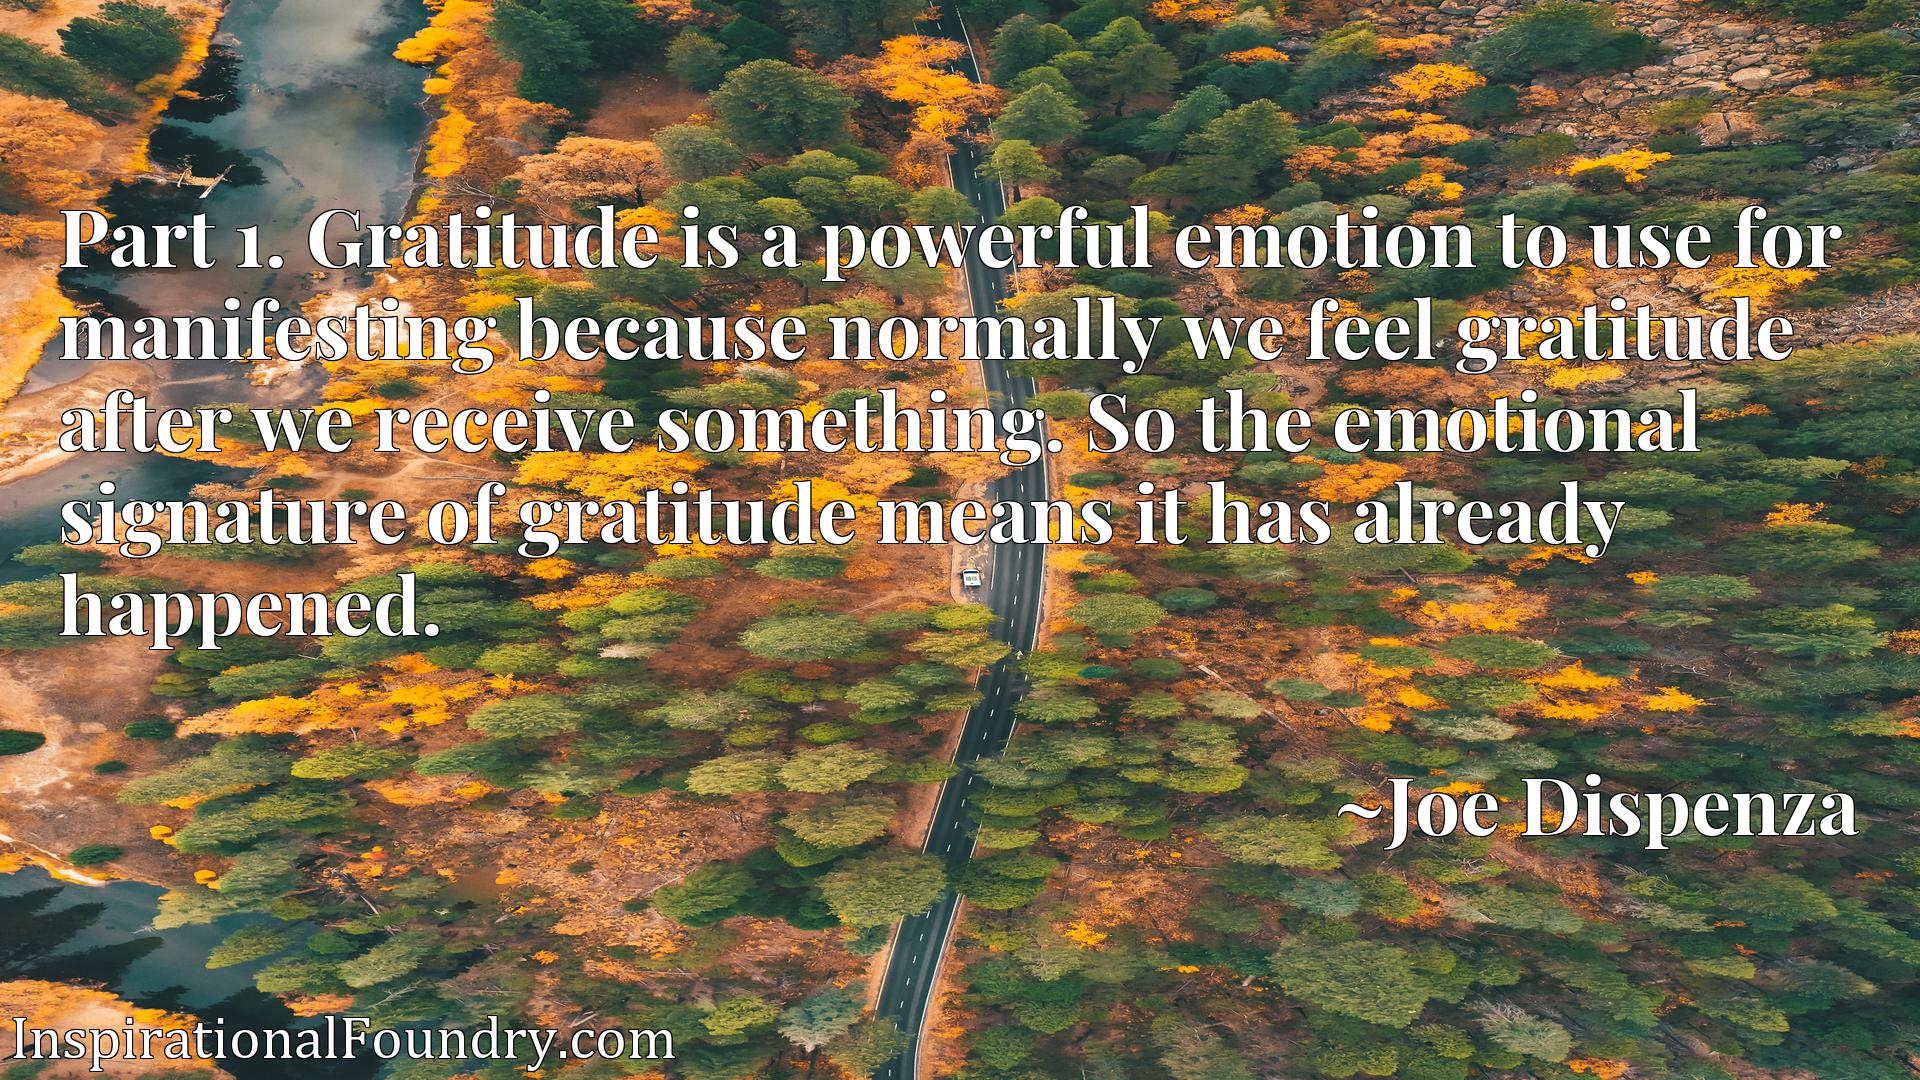 Part 1. Gratitude is a powerful emotion to use for manifesting because normally we feel gratitude after we receive something. So the emotional signature of gratitude means it has already happened.